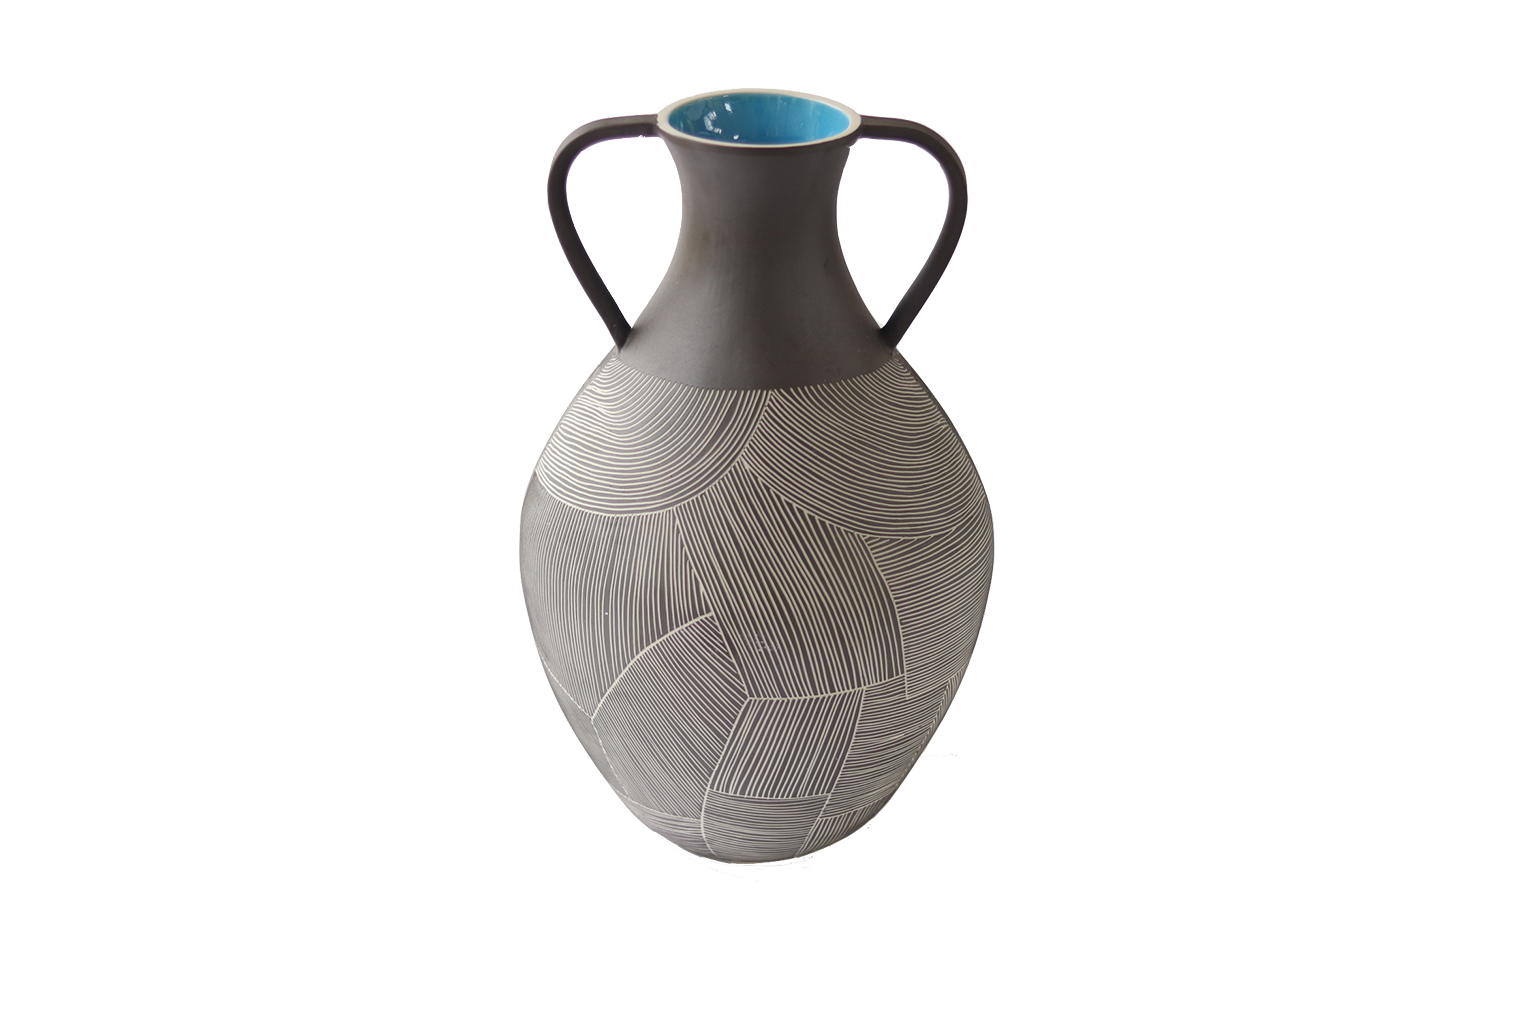 Tall Ceramic Vase with Handles - S$325